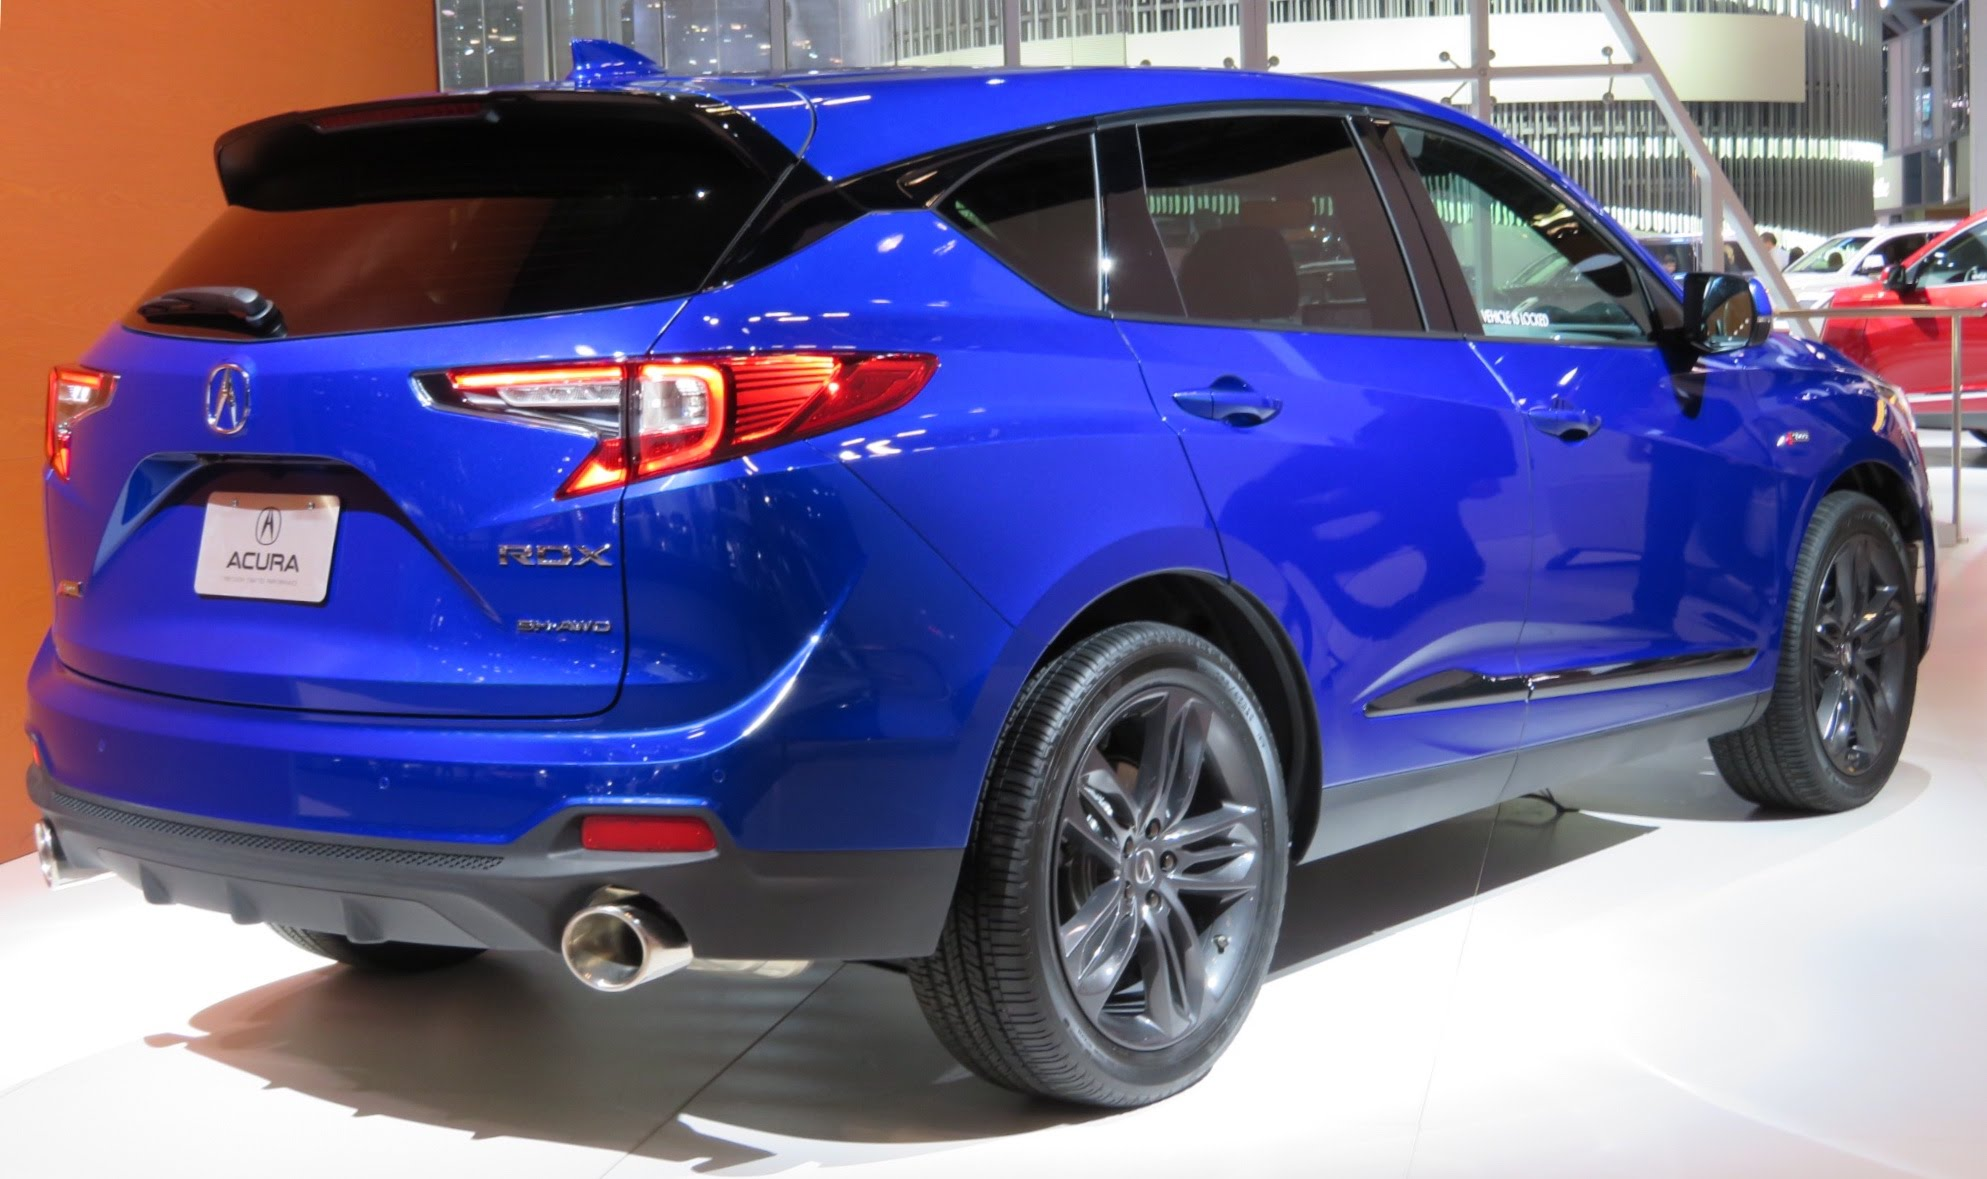 File 2019 Acura Rdx A Spec Rear Blue 4 2 18 Jpg Wikimedia Commons